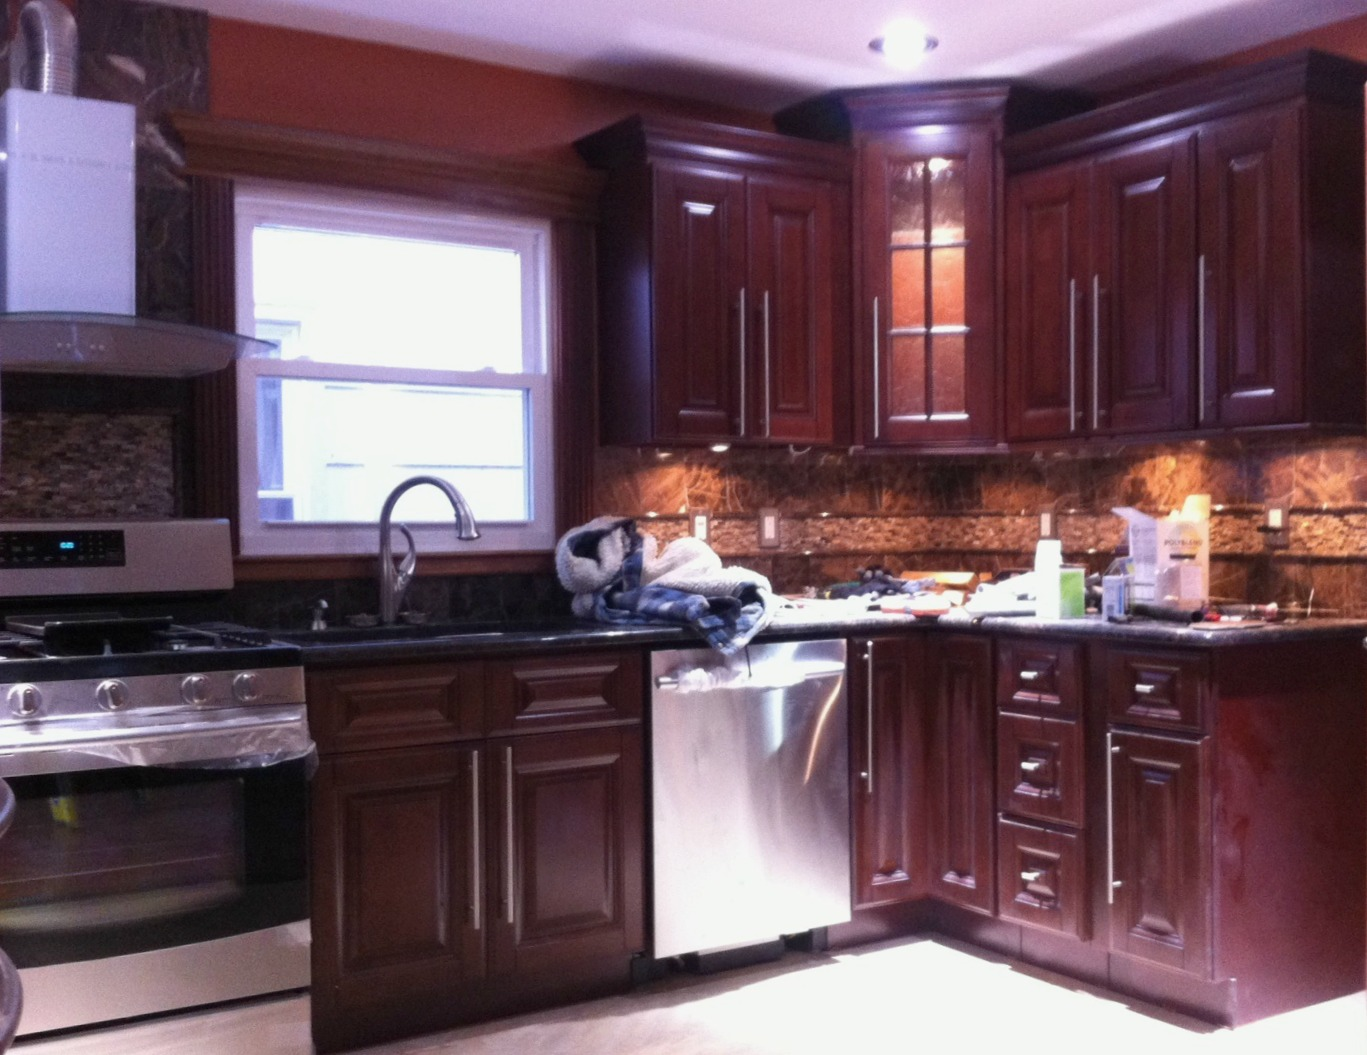 kitchen cabinets perth amboy kitchen cabinets perth amboy nj image to u 6312